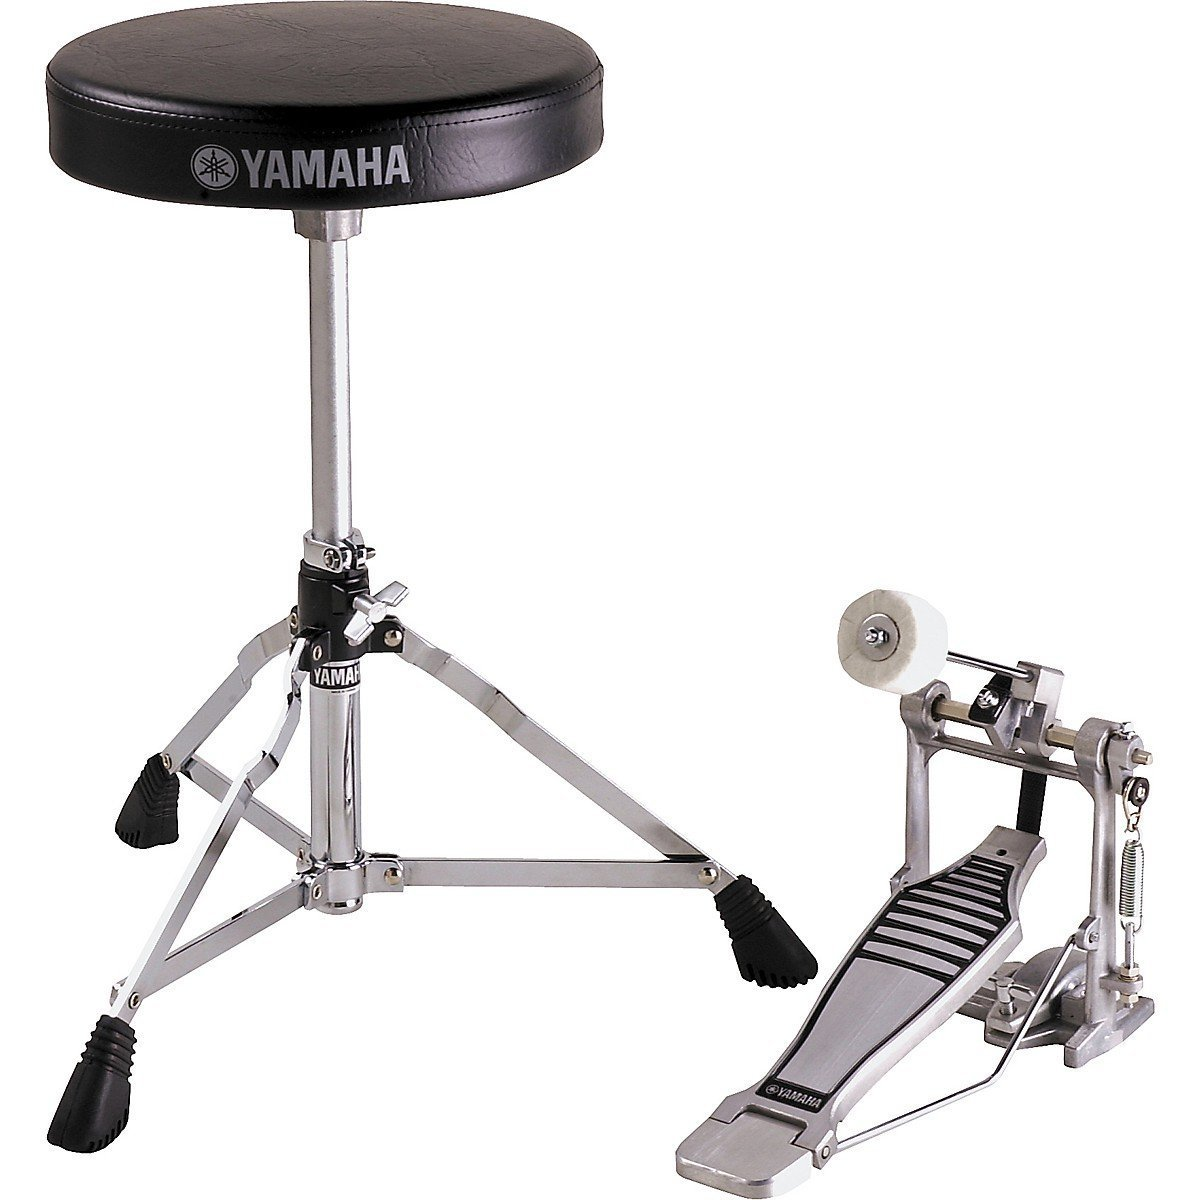 Yamaha ST372FPDS2A FP-6110A and DS-550; Foot Pedal and Drum Throne PKG